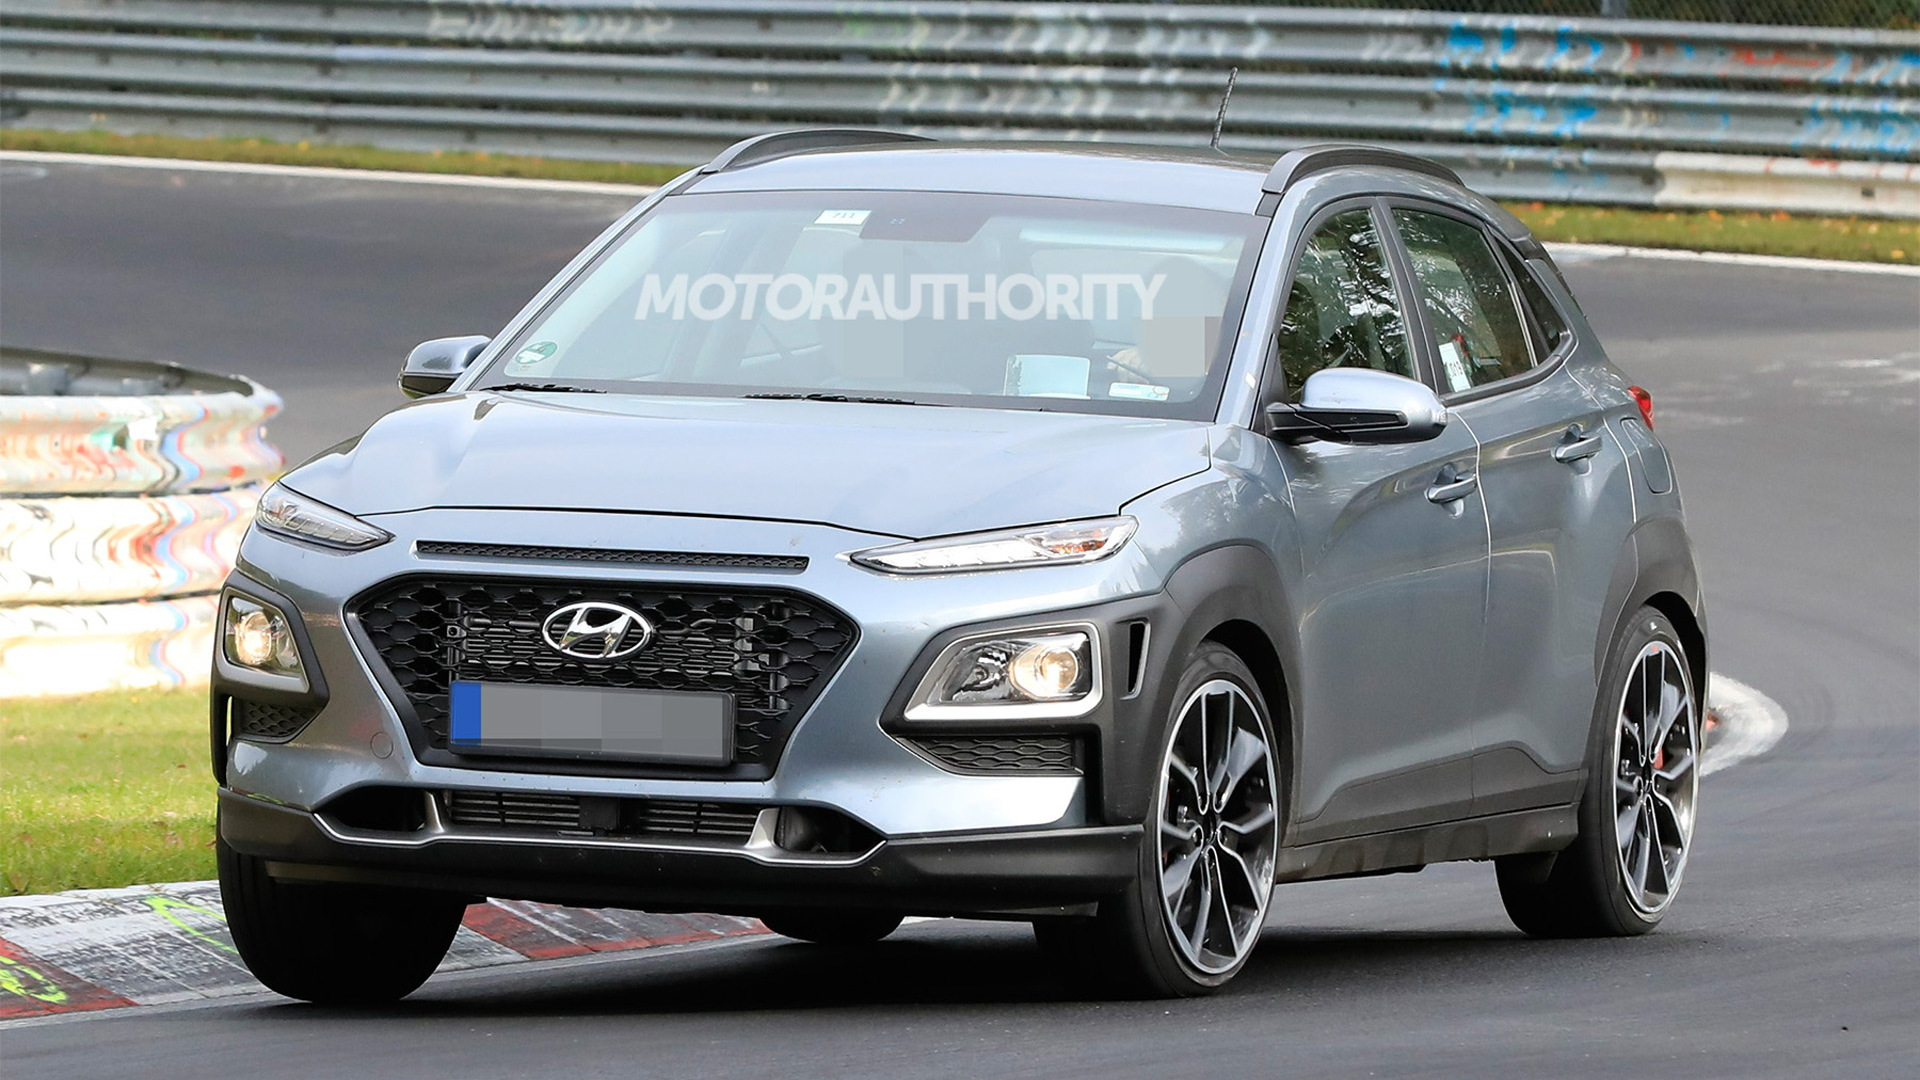 2022 Hyundai Kona N test mule spy shots - Photo credit: S. Baldauf/SB-Medien